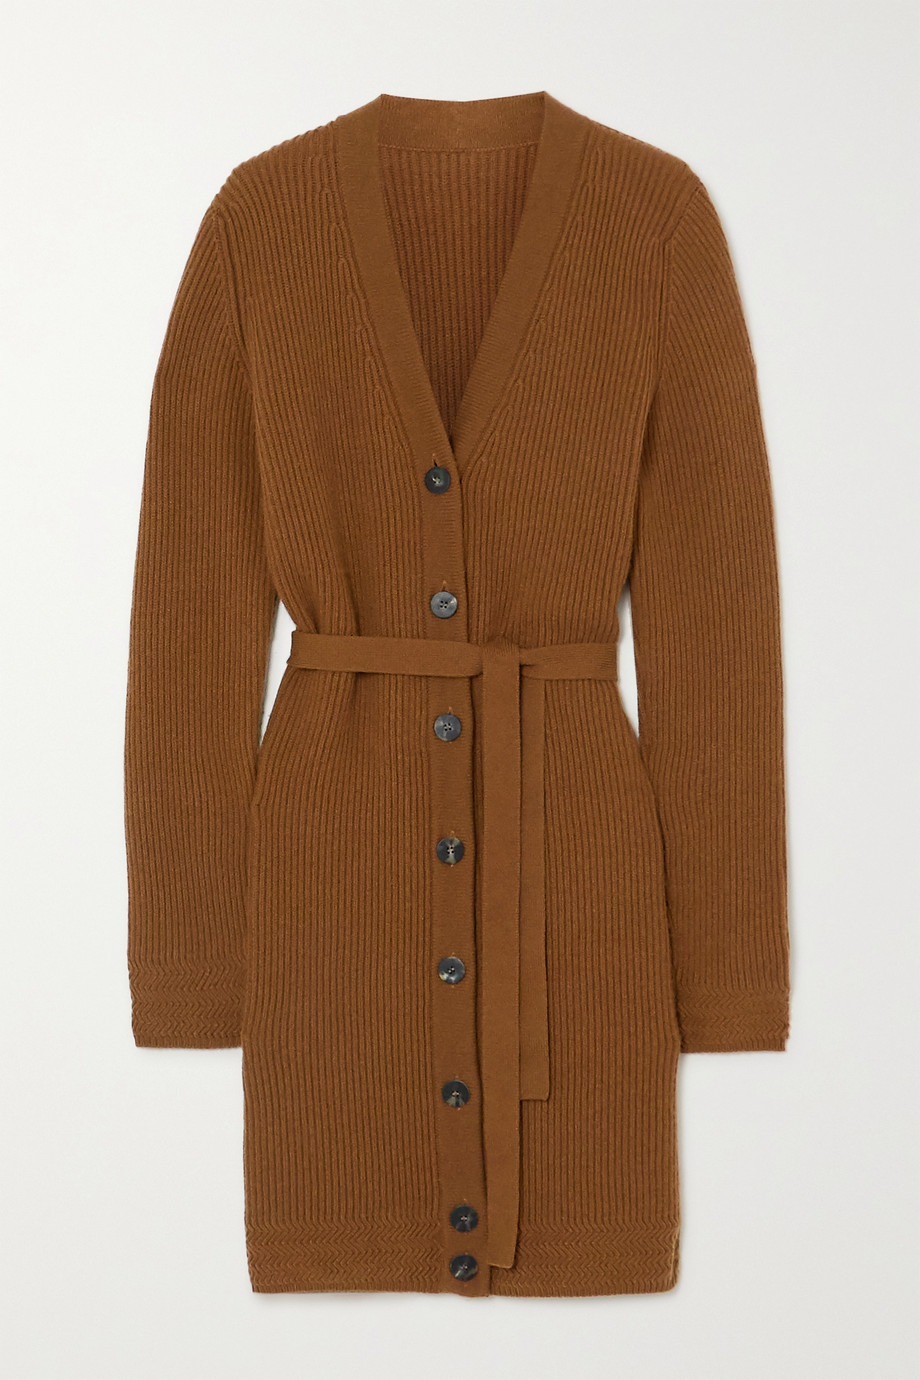 YOOX NET-A-PORTER For The Prince's Foundation Belted ribbed cashmere cardigan